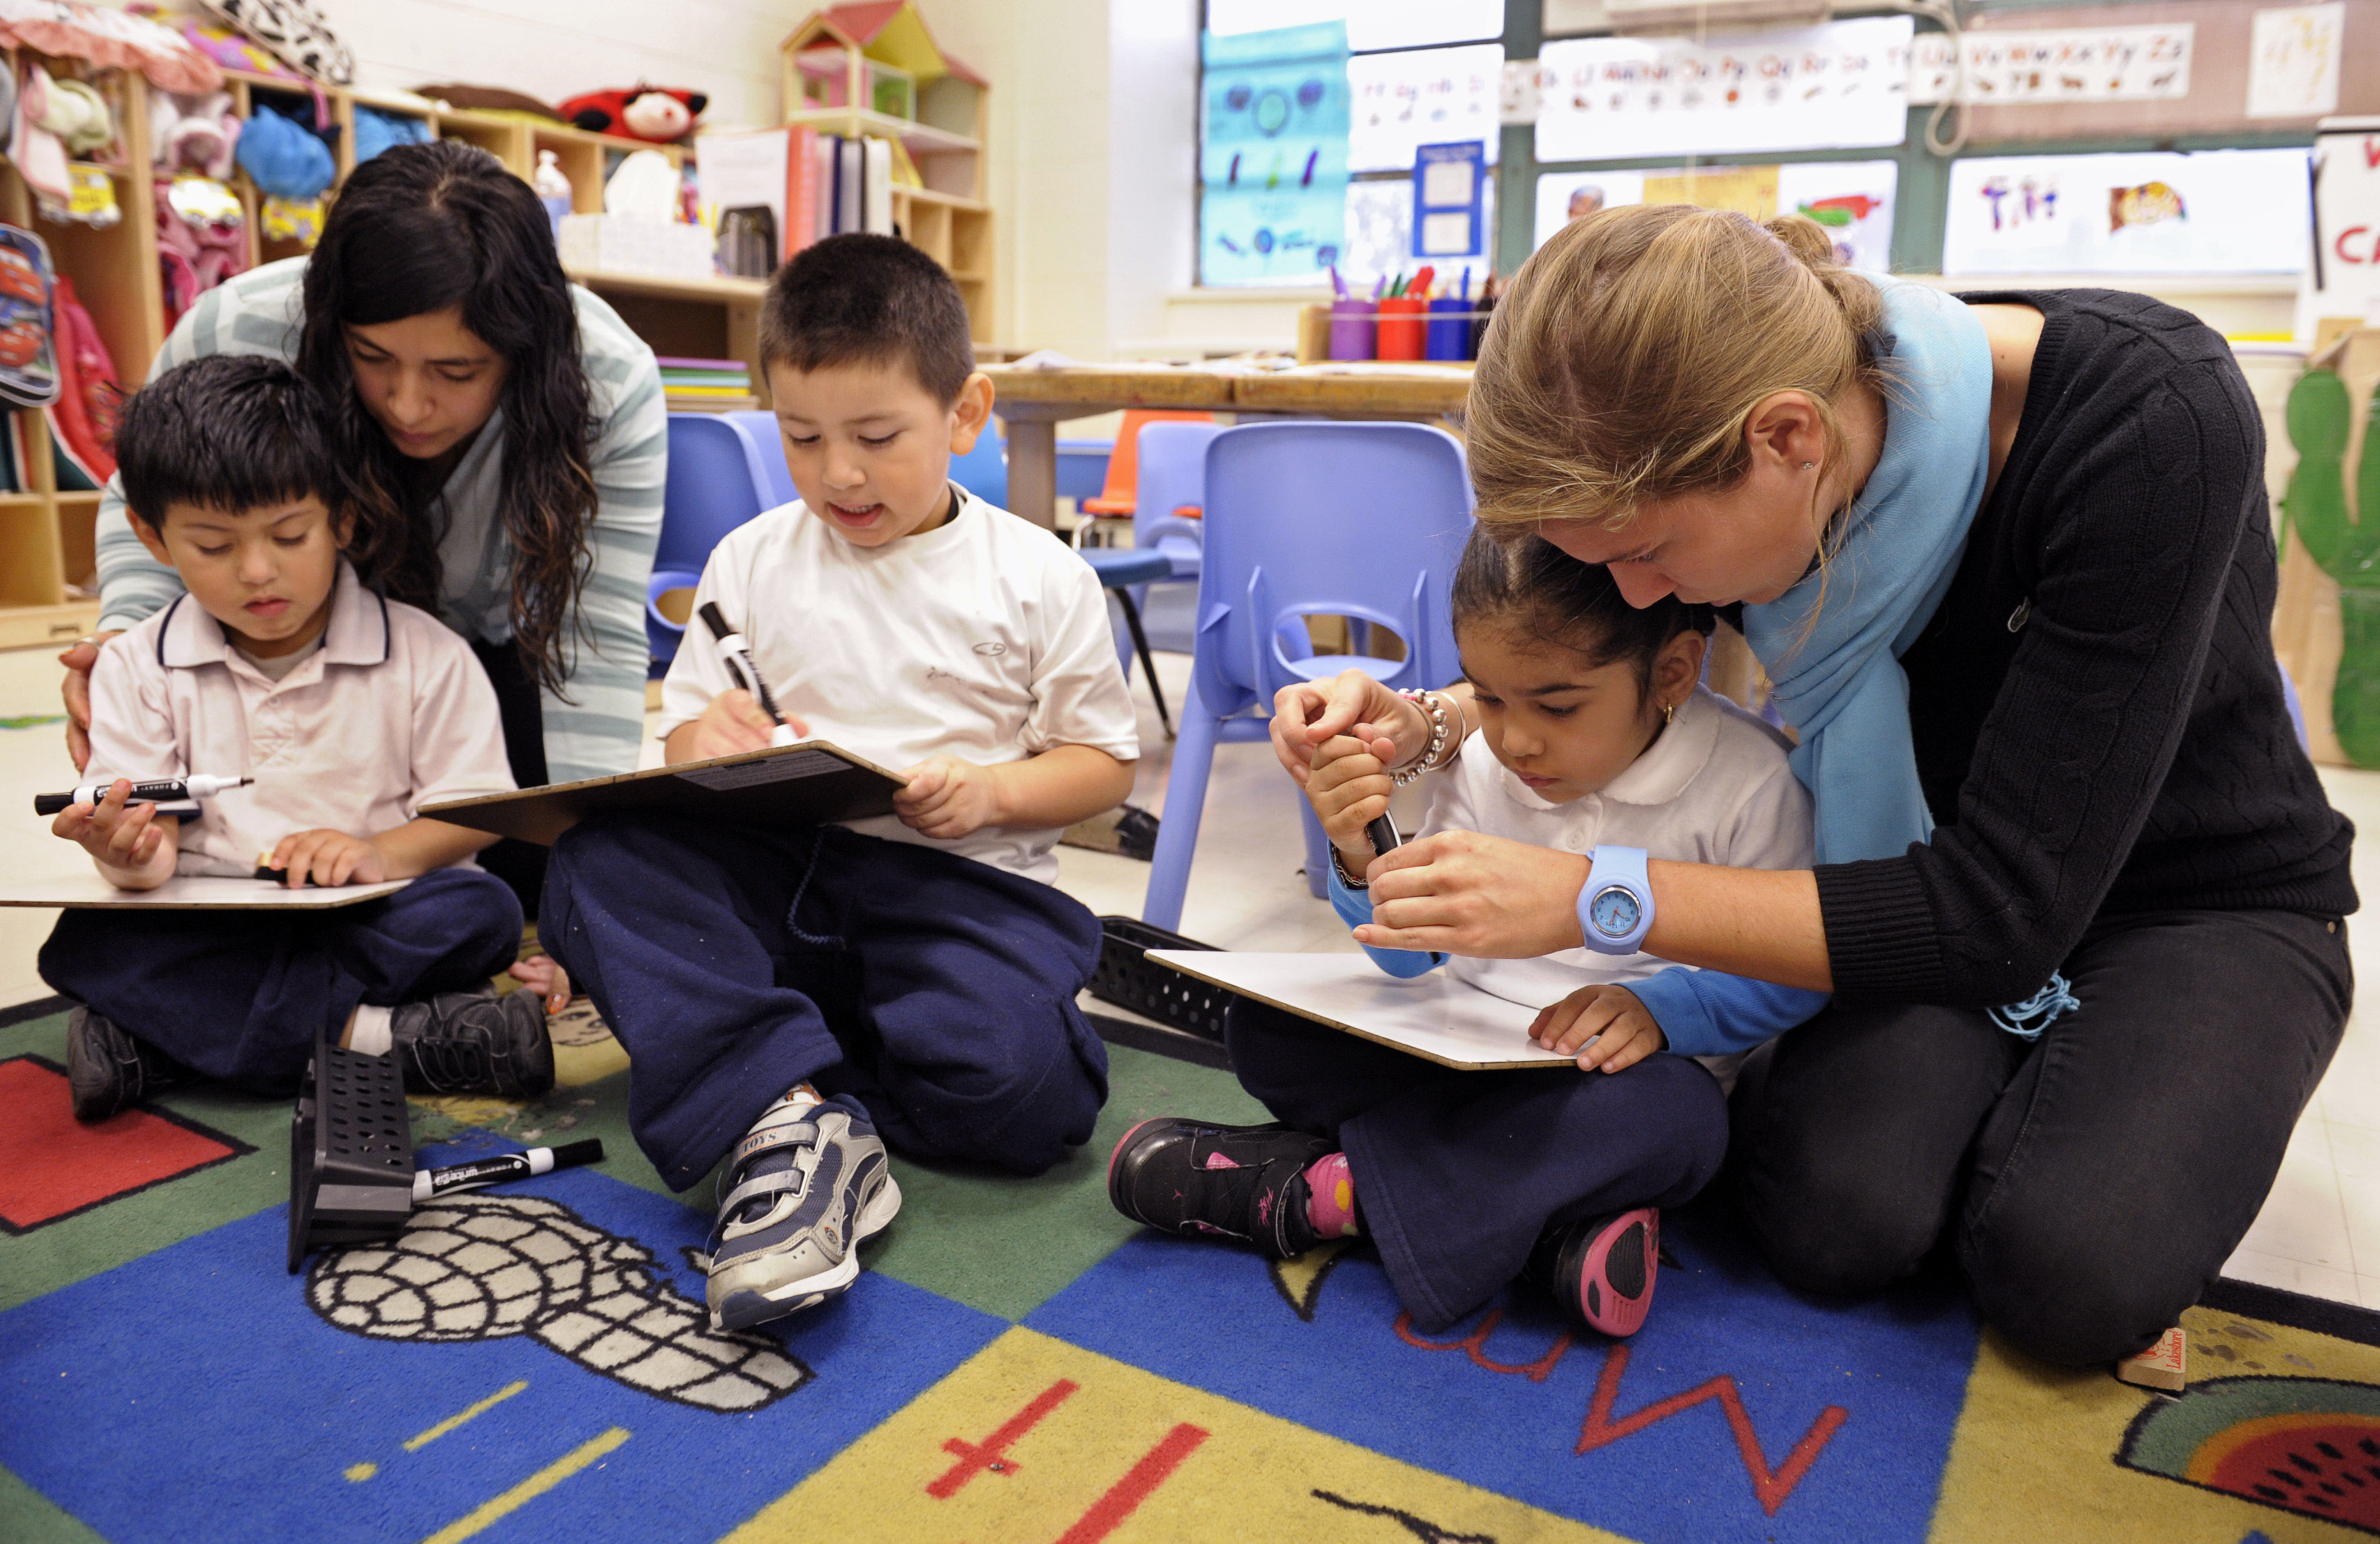 Survey Most Seattle Kids Enrolled In Pre K But Not As Many Attend Full Time